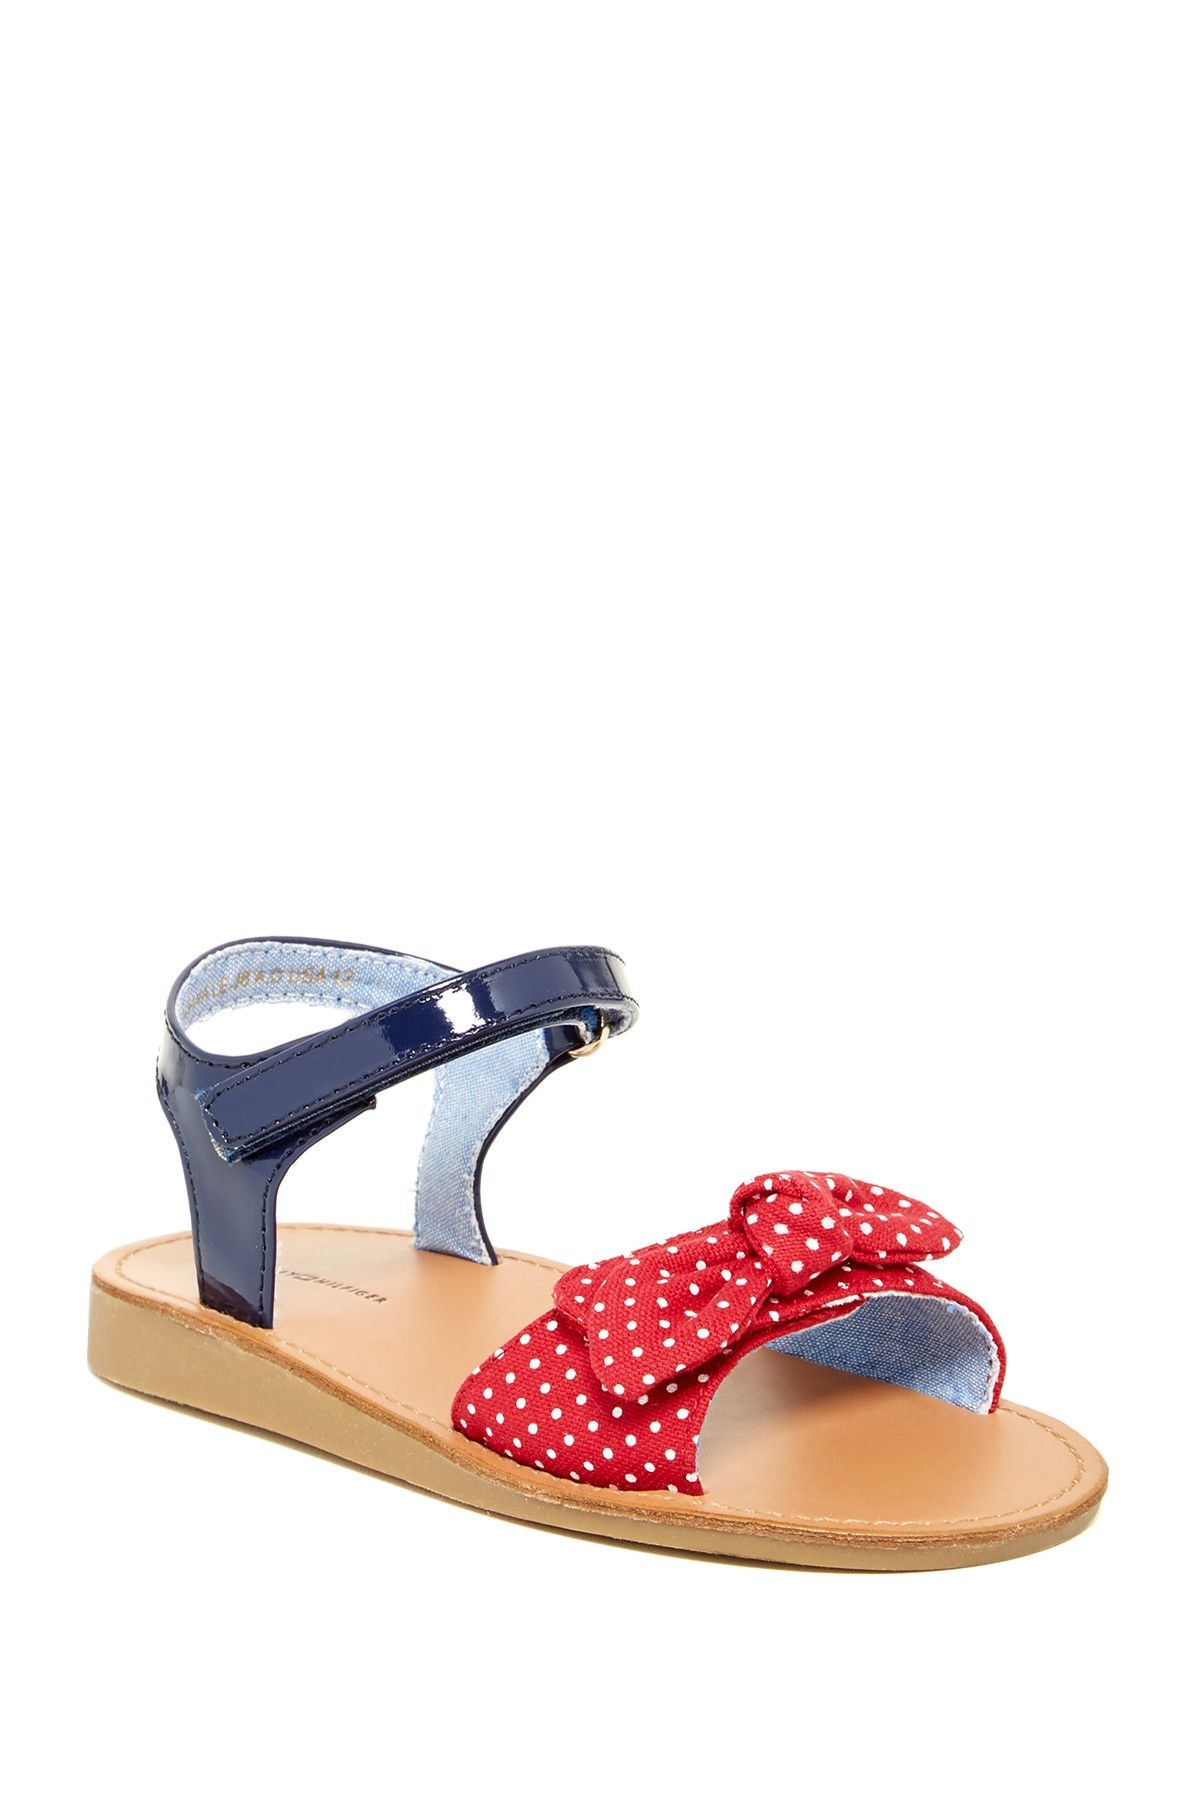 Pin on Fall shoes